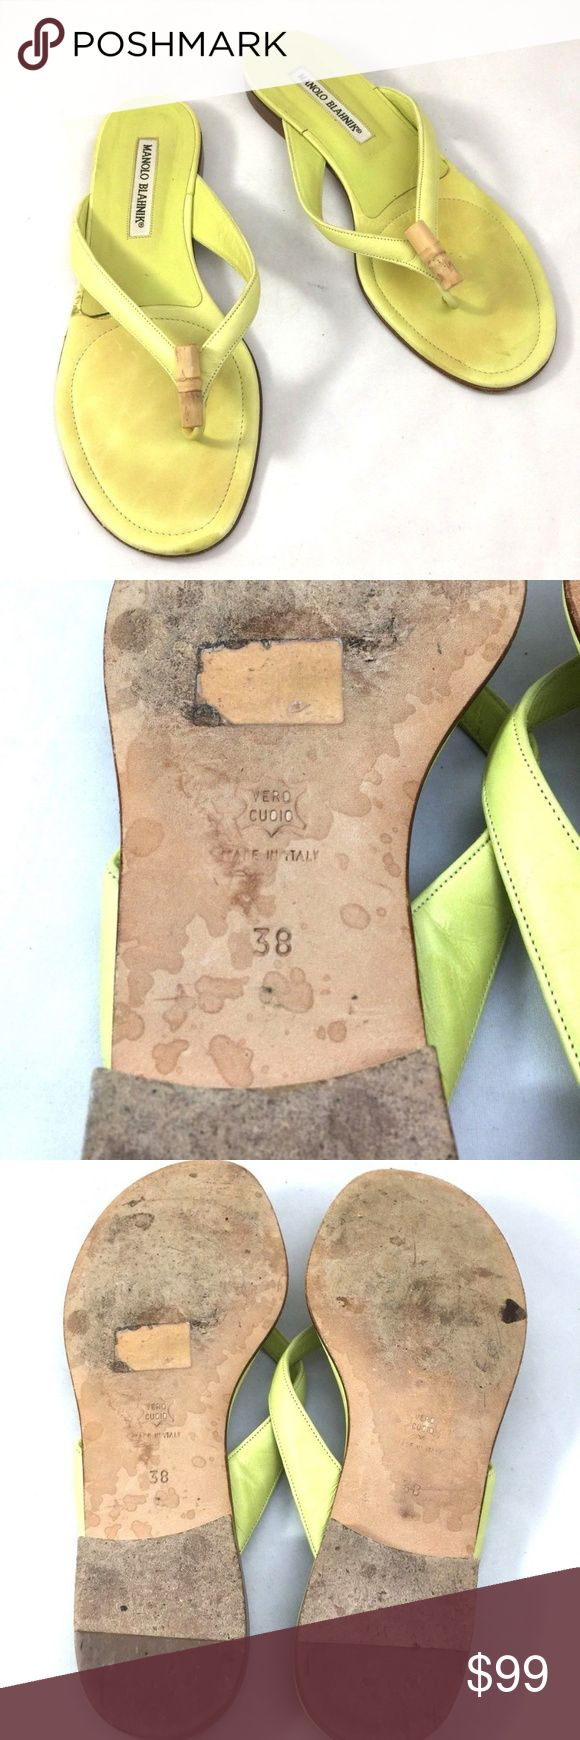 ed02a9626 Manolo Blahnik Lime Green Bamboo Flip Flop Slide 8 Lime green leather Manolo  Blahnik thong sandals with bamboo accent at vamps